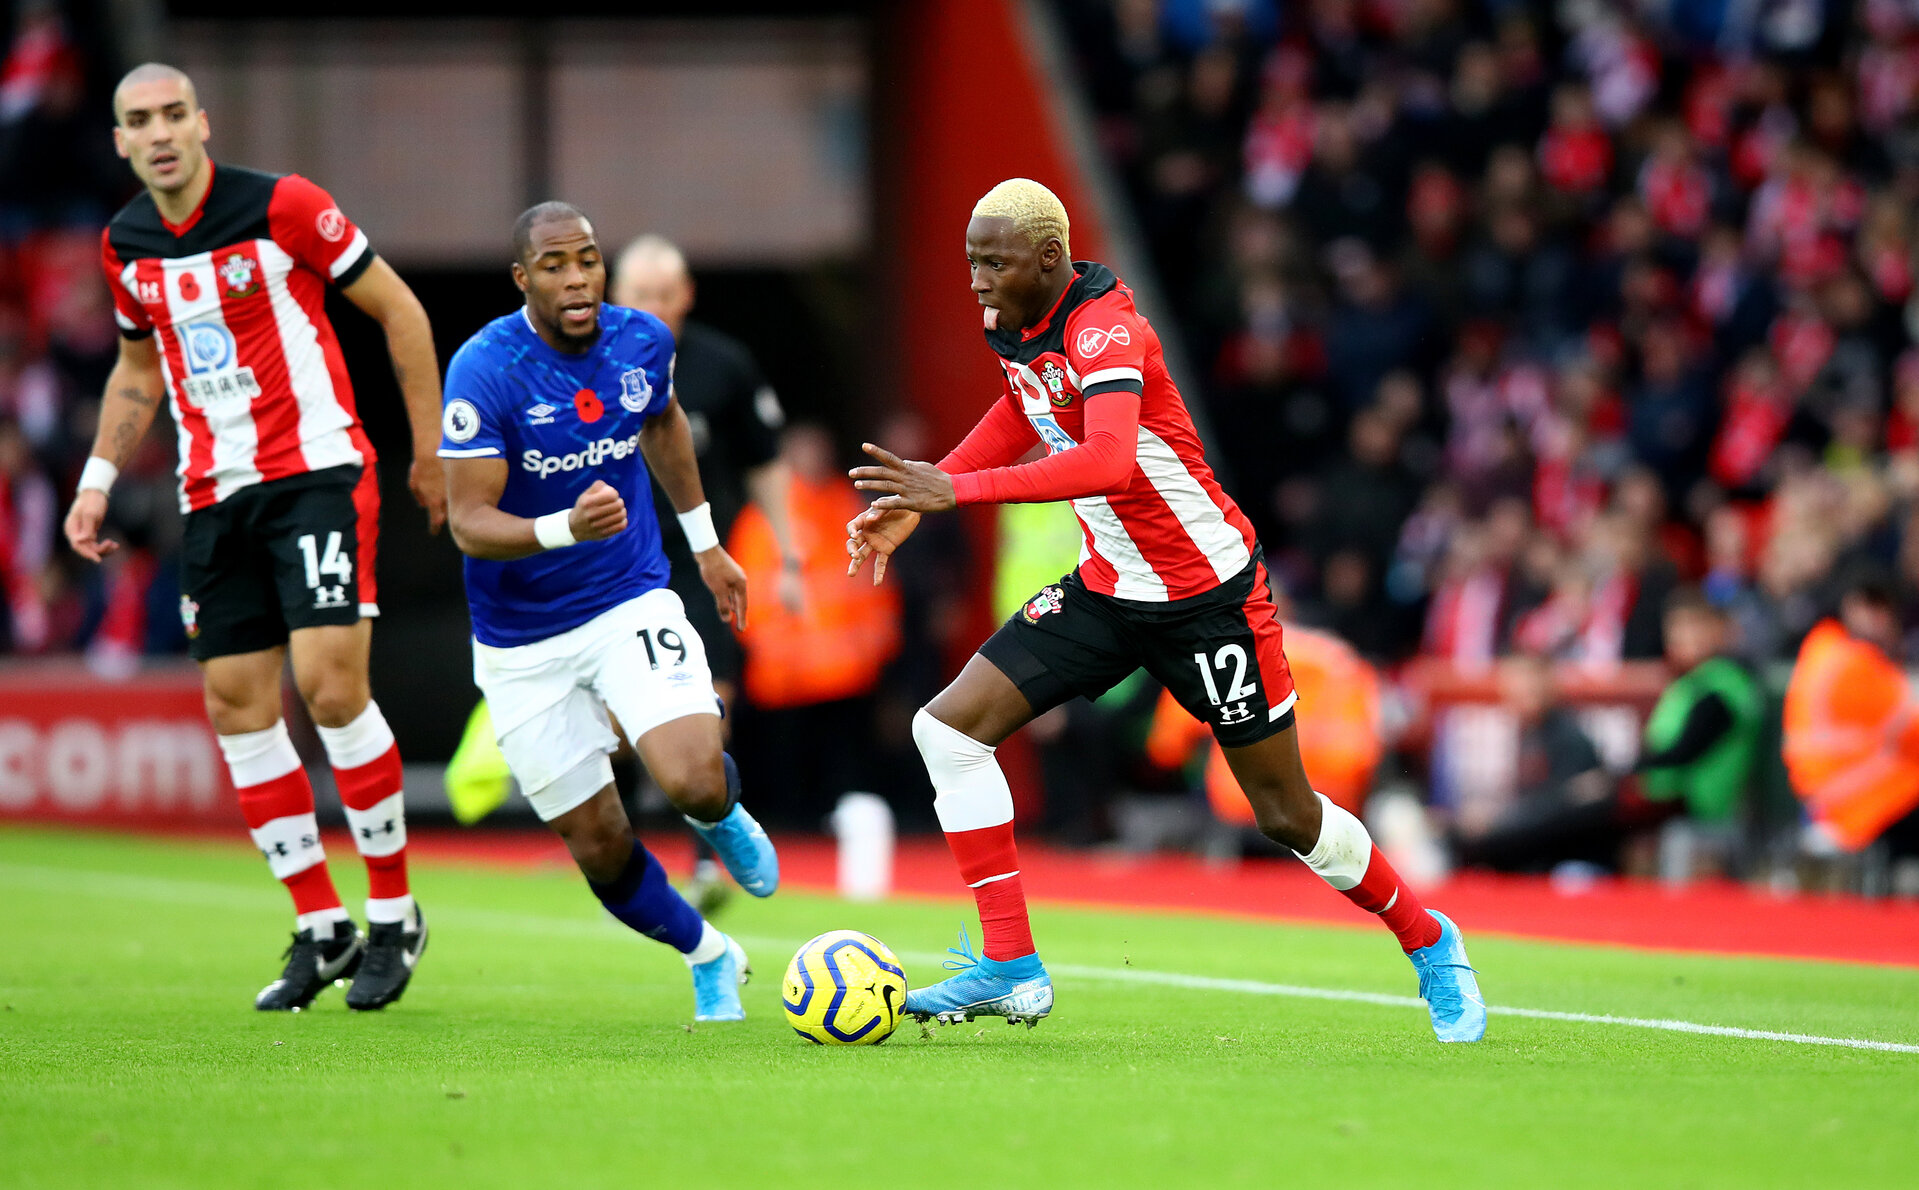 SOUTHAMPTON, ENGLAND - NOVEMBER 09: Moussa Djenepo of Southampton during the Premier League match between Southampton FC and Everton FC at St Mary's Stadium on November 09, 2019 in Southampton, United Kingdom. (Photo by Matt Watson/Southampton FC via Getty Images)